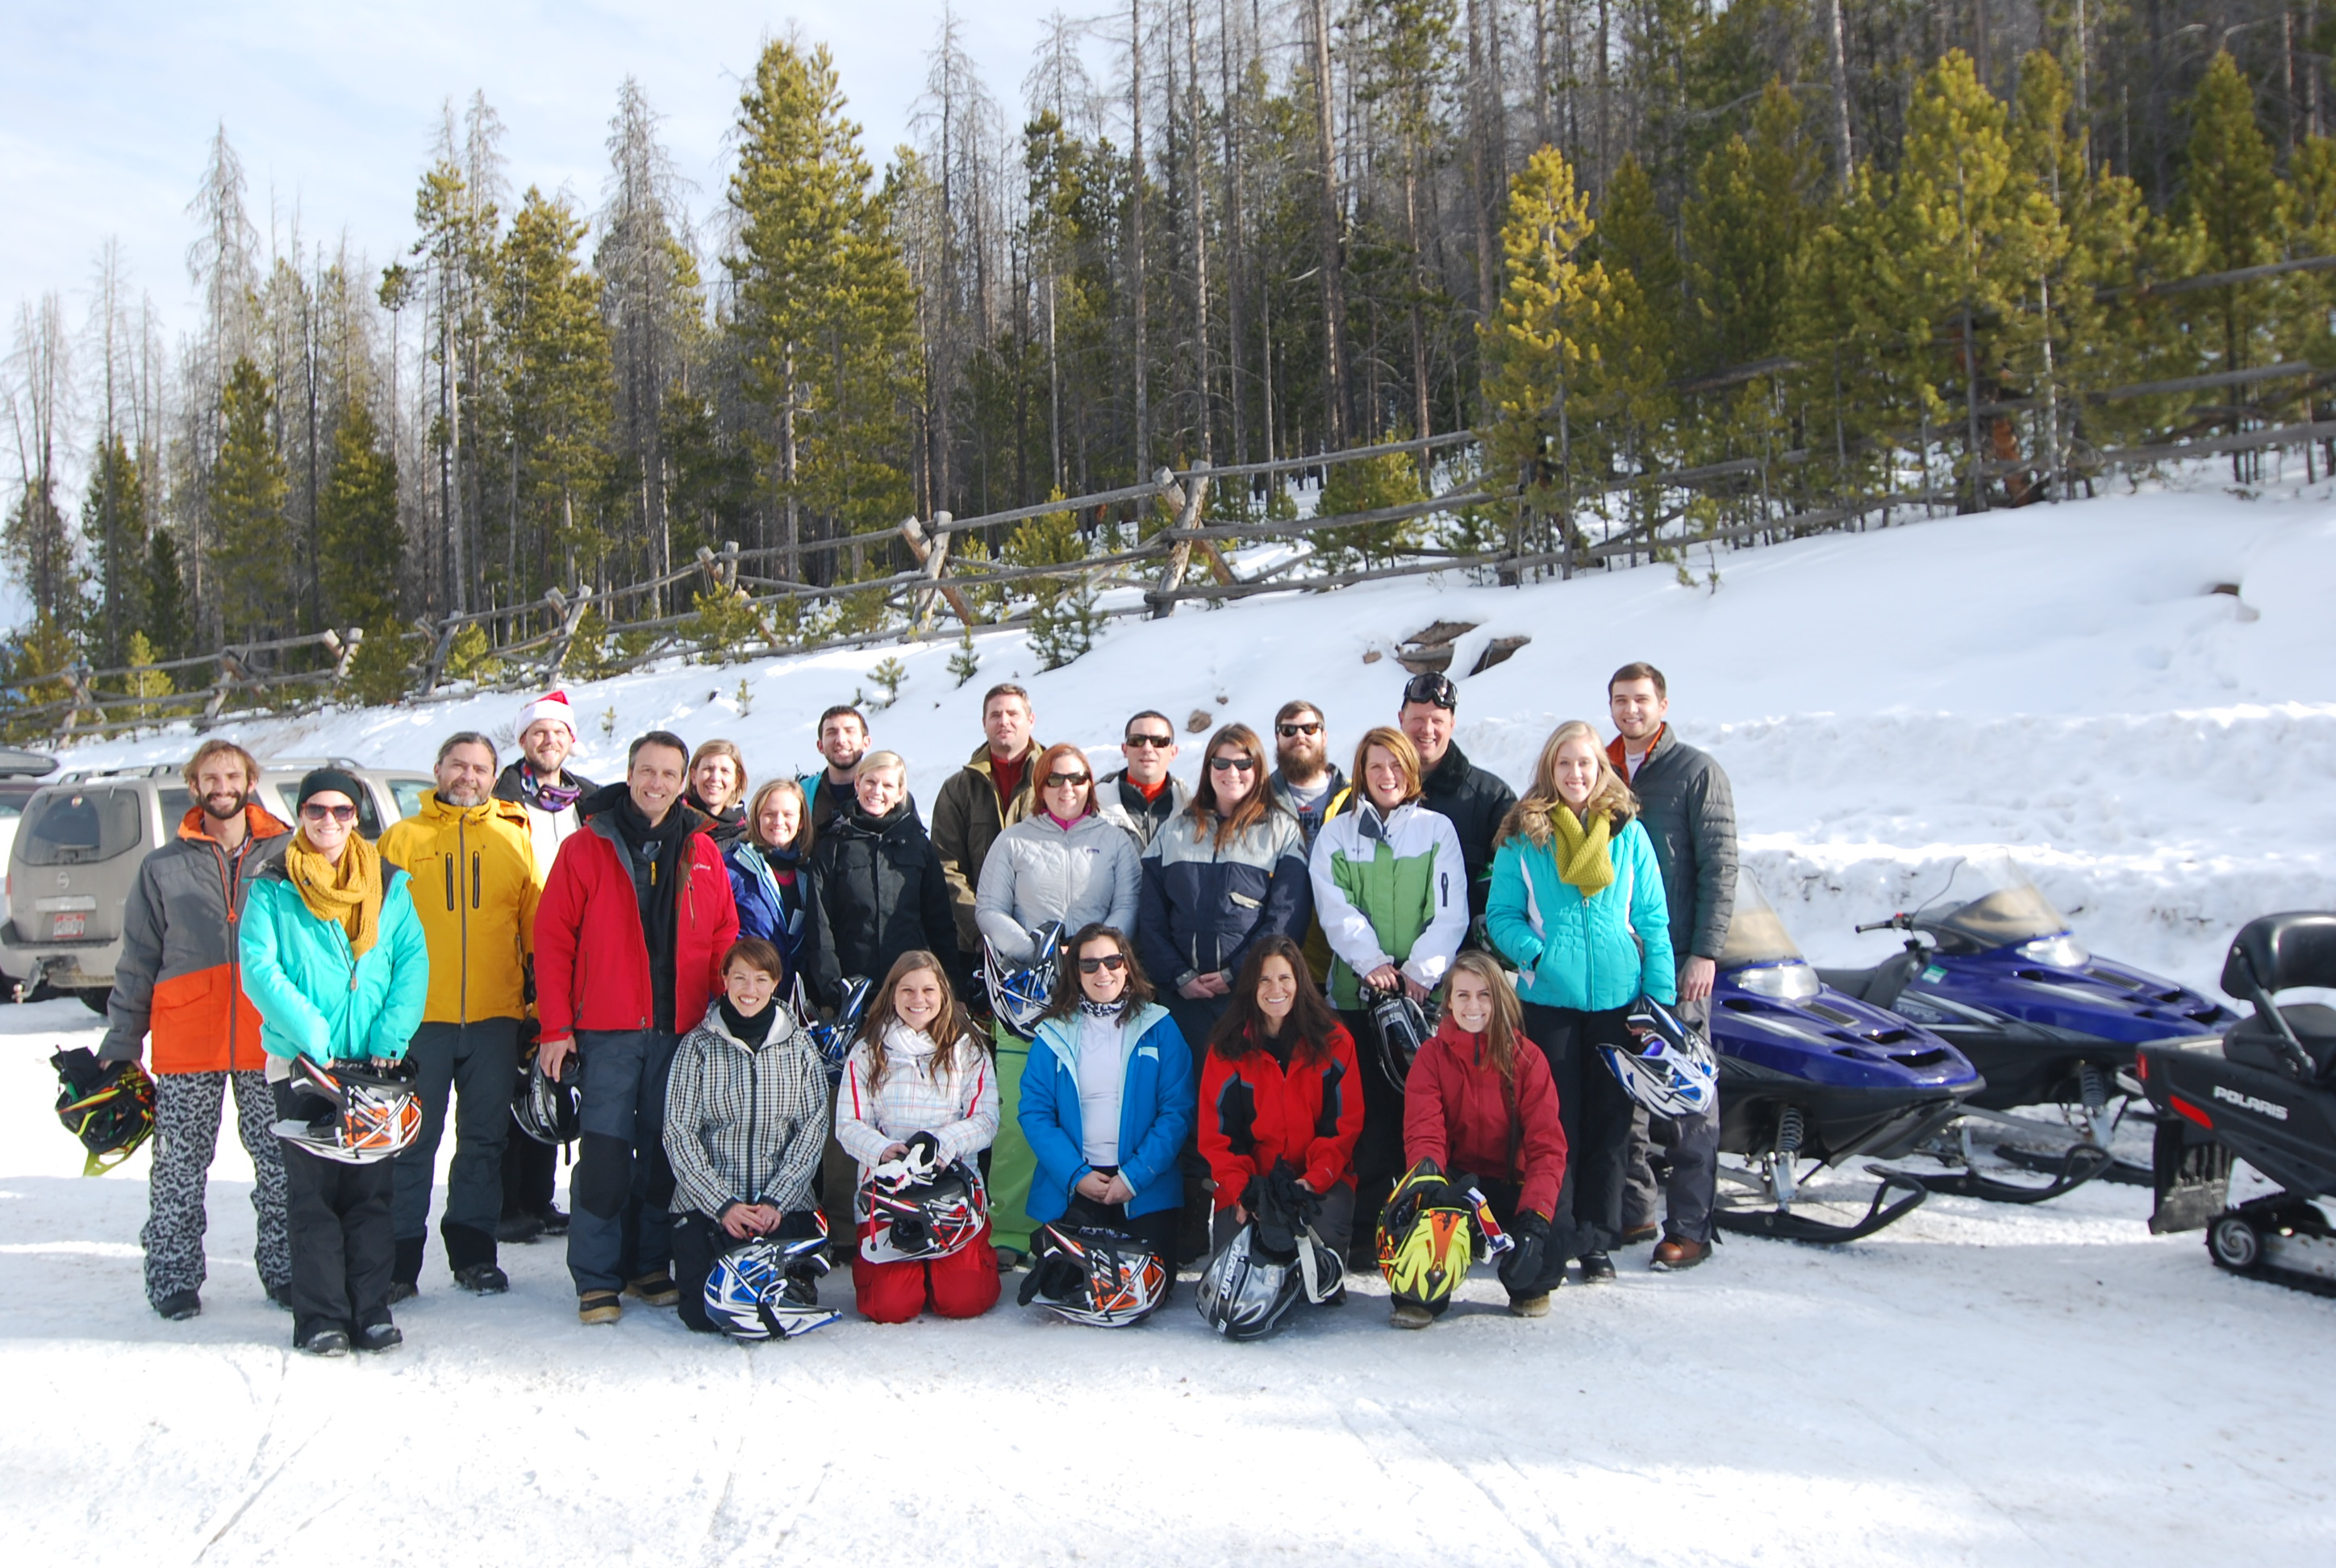 Snowmobiling for Christmas